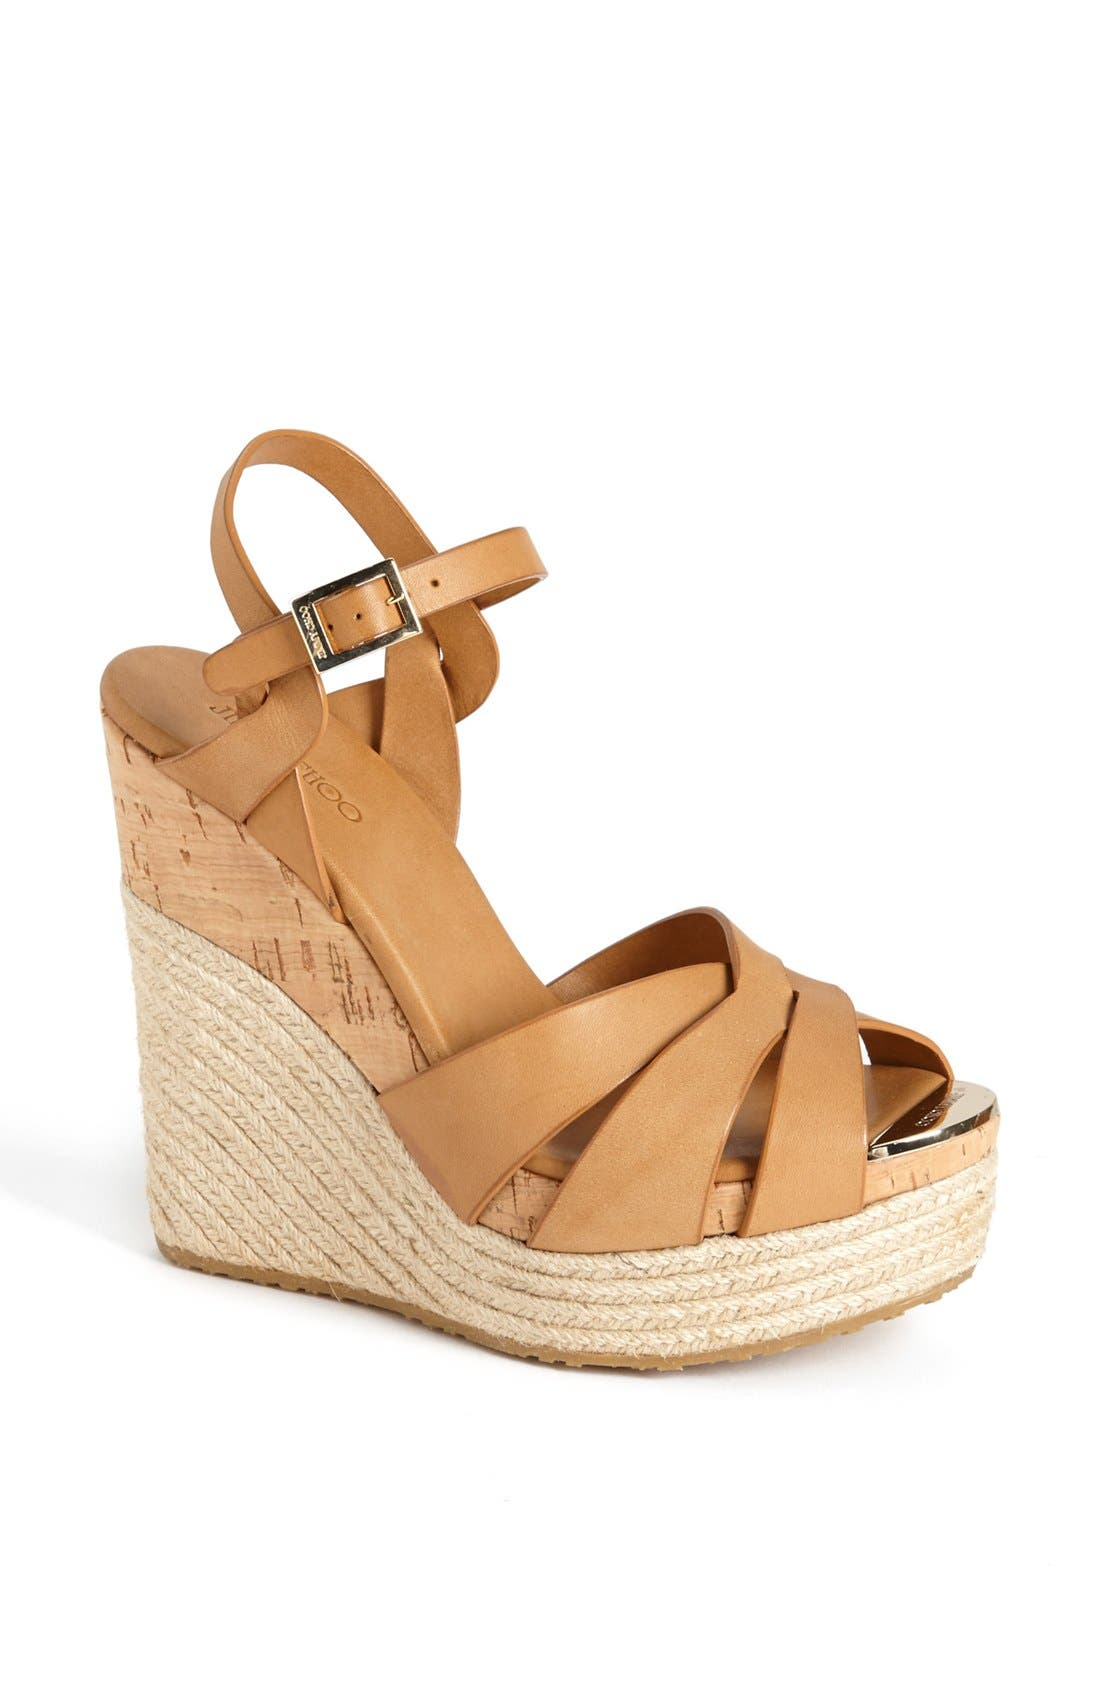 Main Image - Jimmy Choo 'Peddle' Wedge Sandal